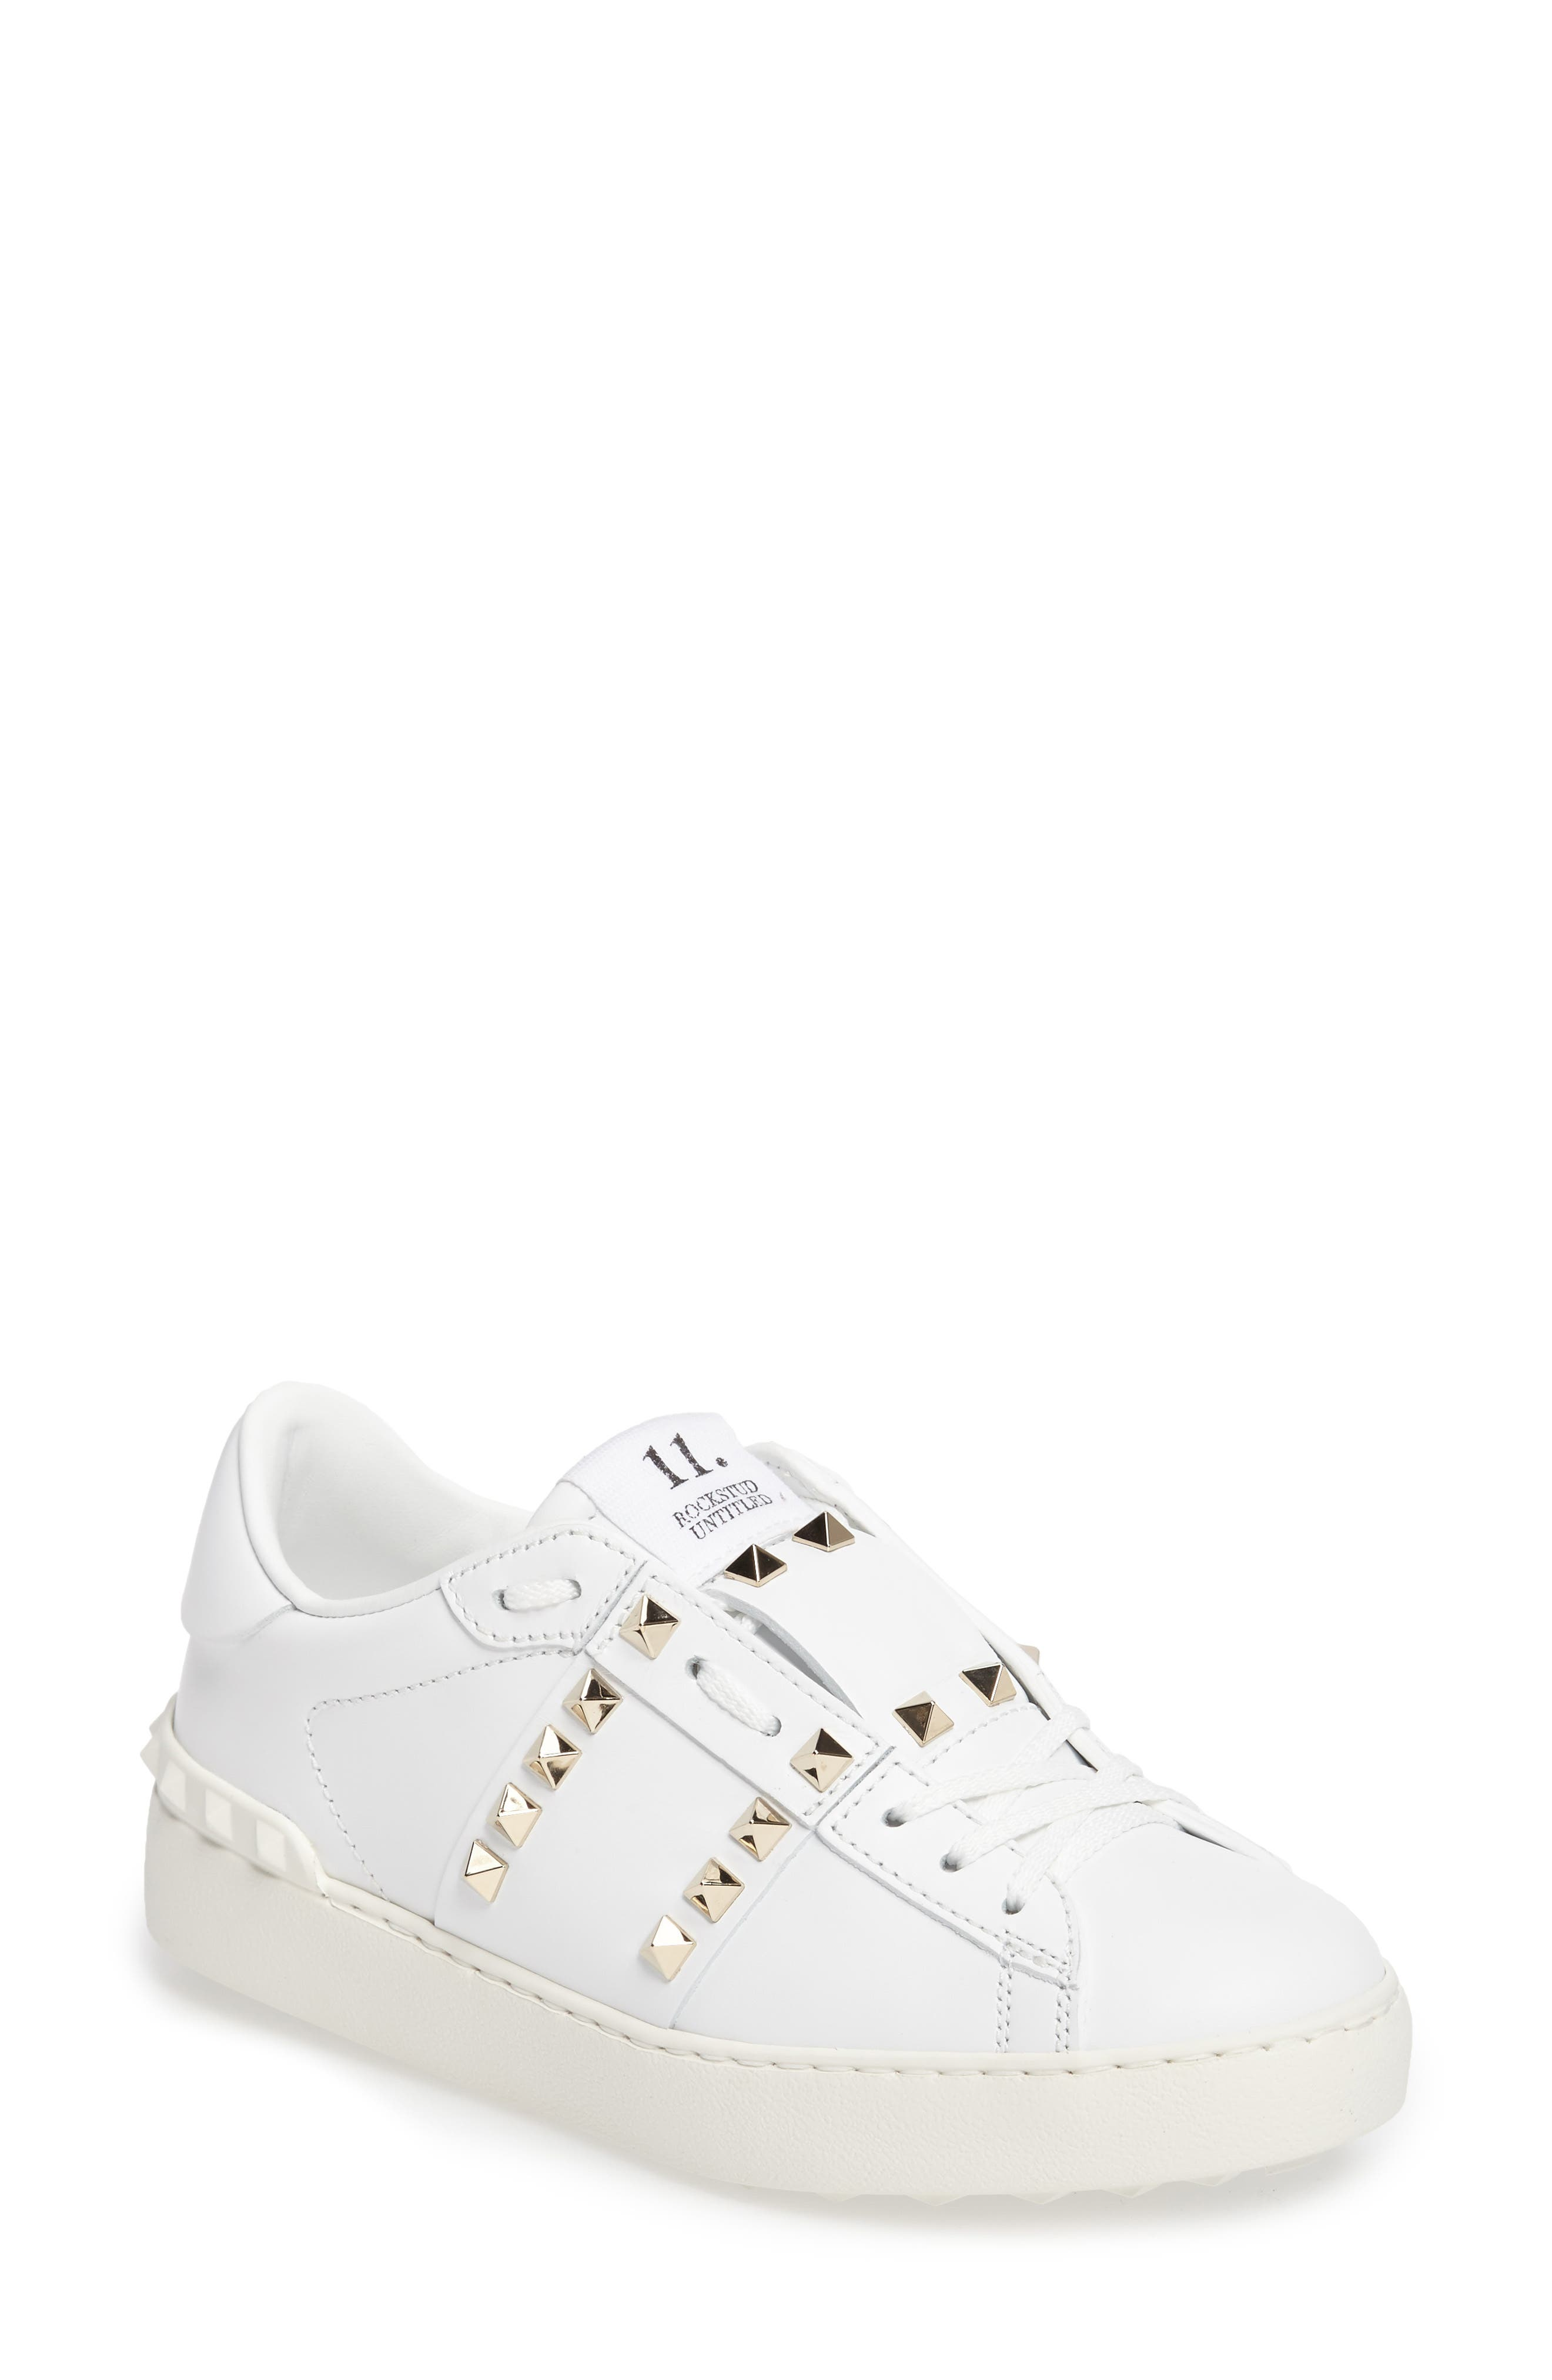 'Rockstud' Sneaker,                         Main,                         color, WHITE LEATHER